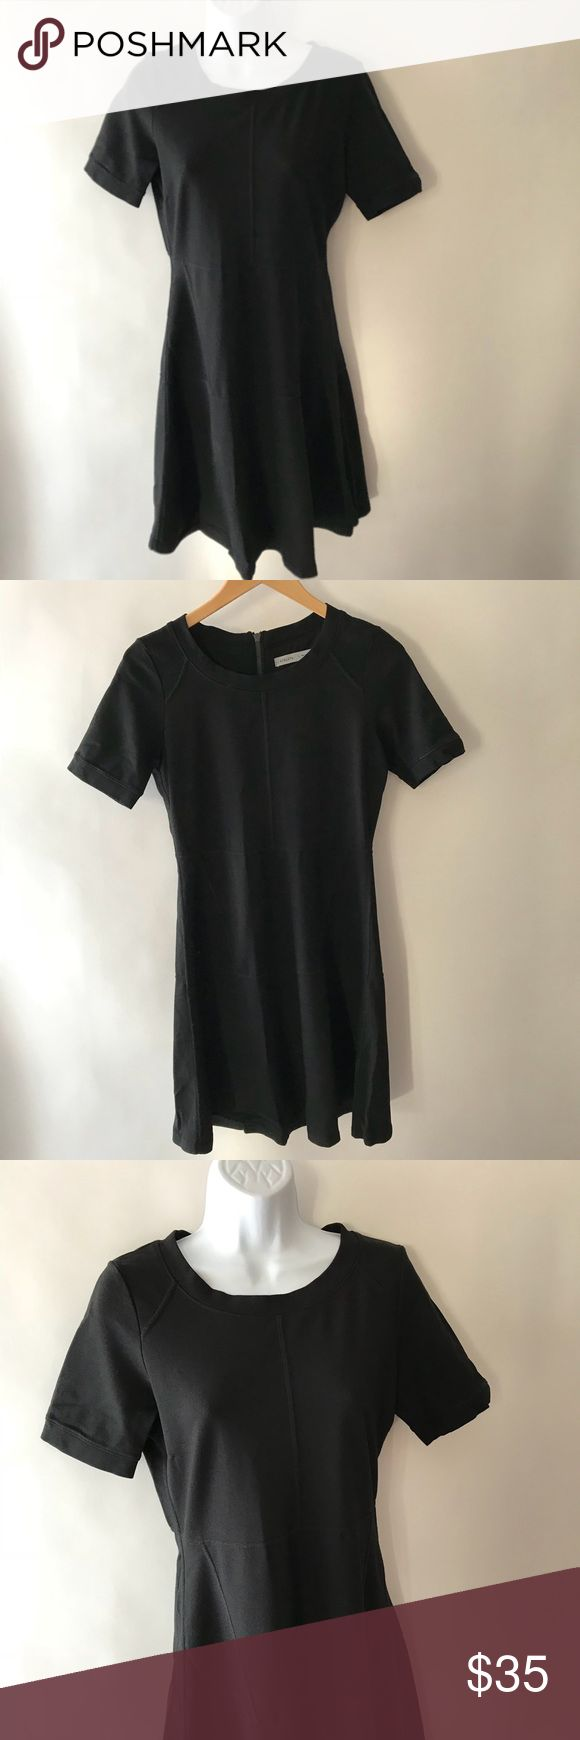 "Athleta En Route Fit & Flare Dress Black Small Athleta En Route Fit & Flare Dress  Color: Black  Size: Small  Exposed Zipper Back  Stretch  Viscose, Rayon, Nylon, Spandex Underarm to Underarm: 17"" Length 36"" Gently Used Pre-Owned Condition   180206-OS1139 Athleta Dresses"